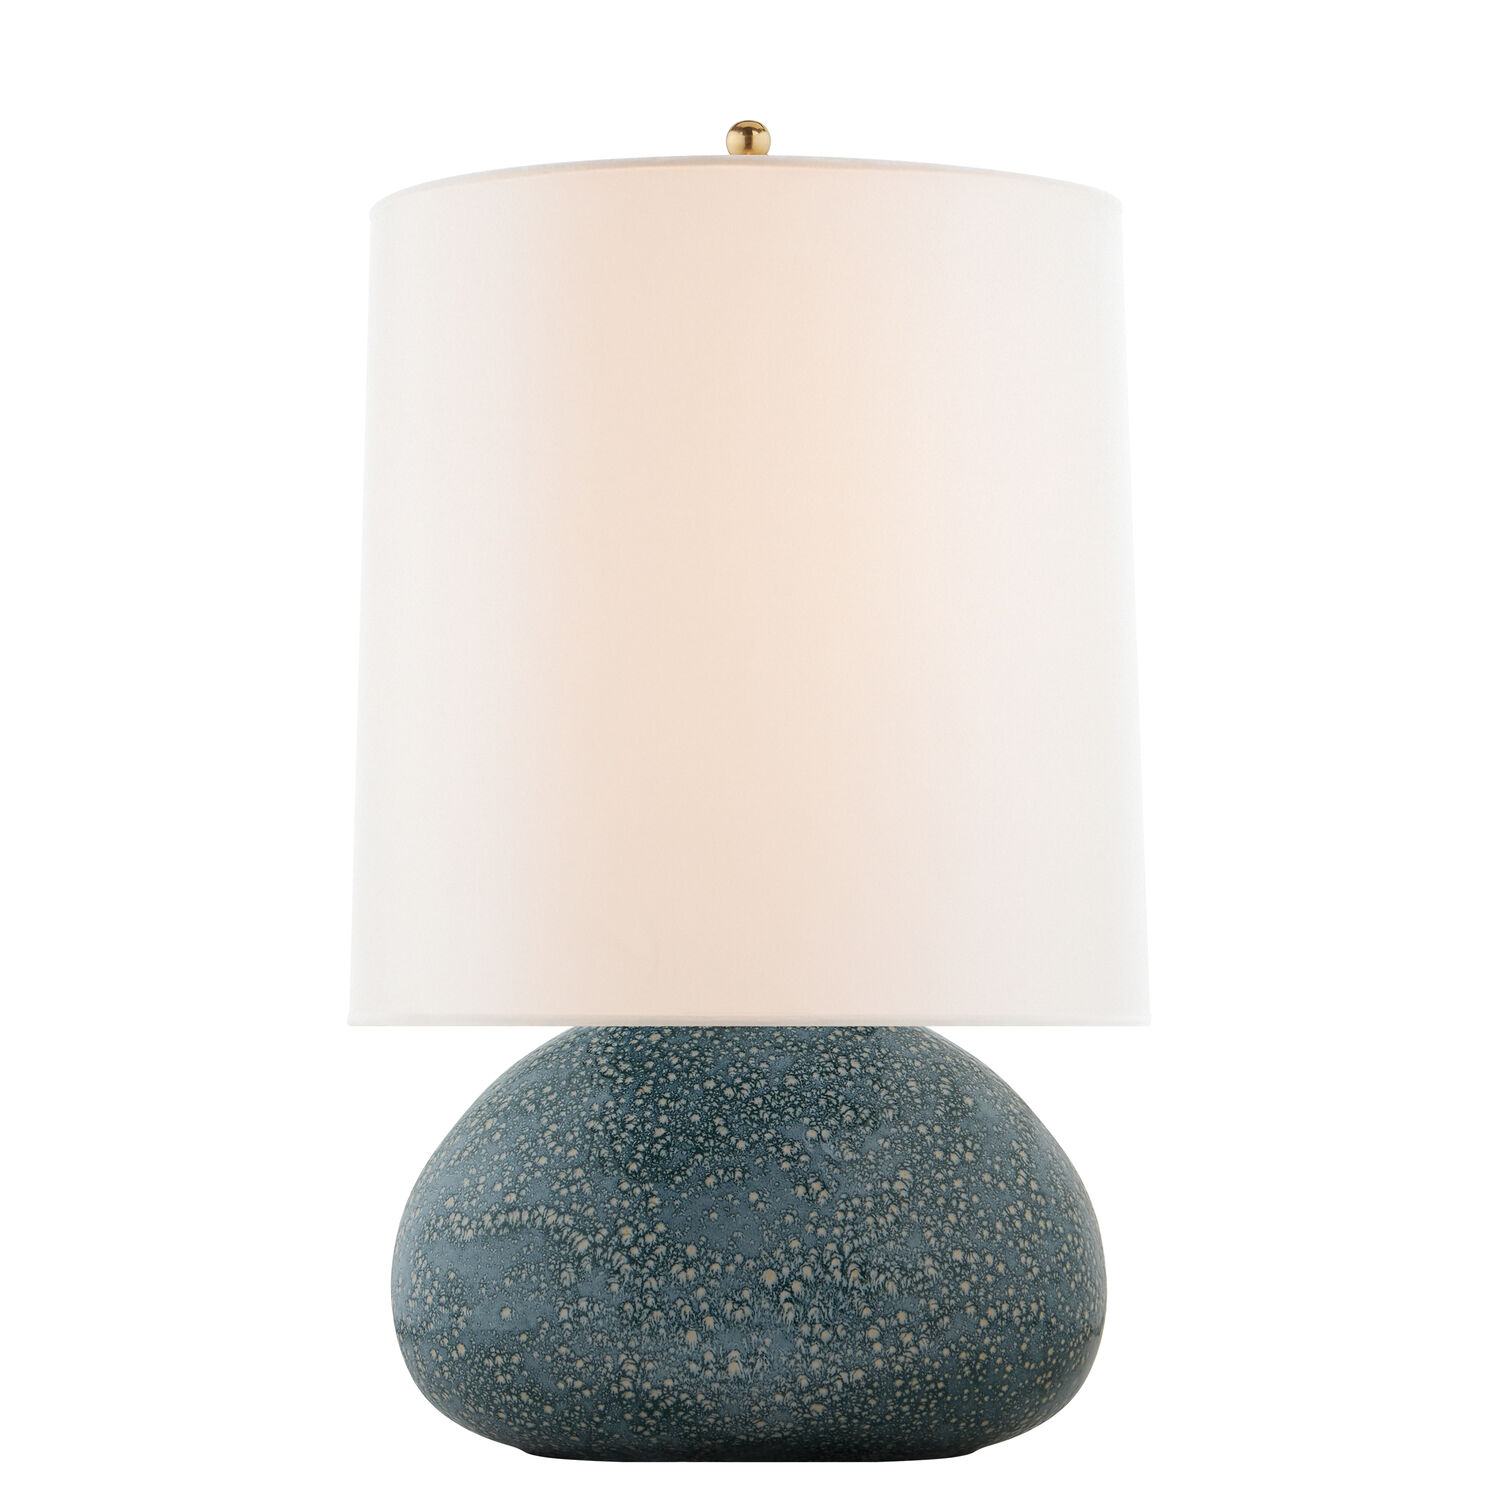 Sumava Medium Table Lamp